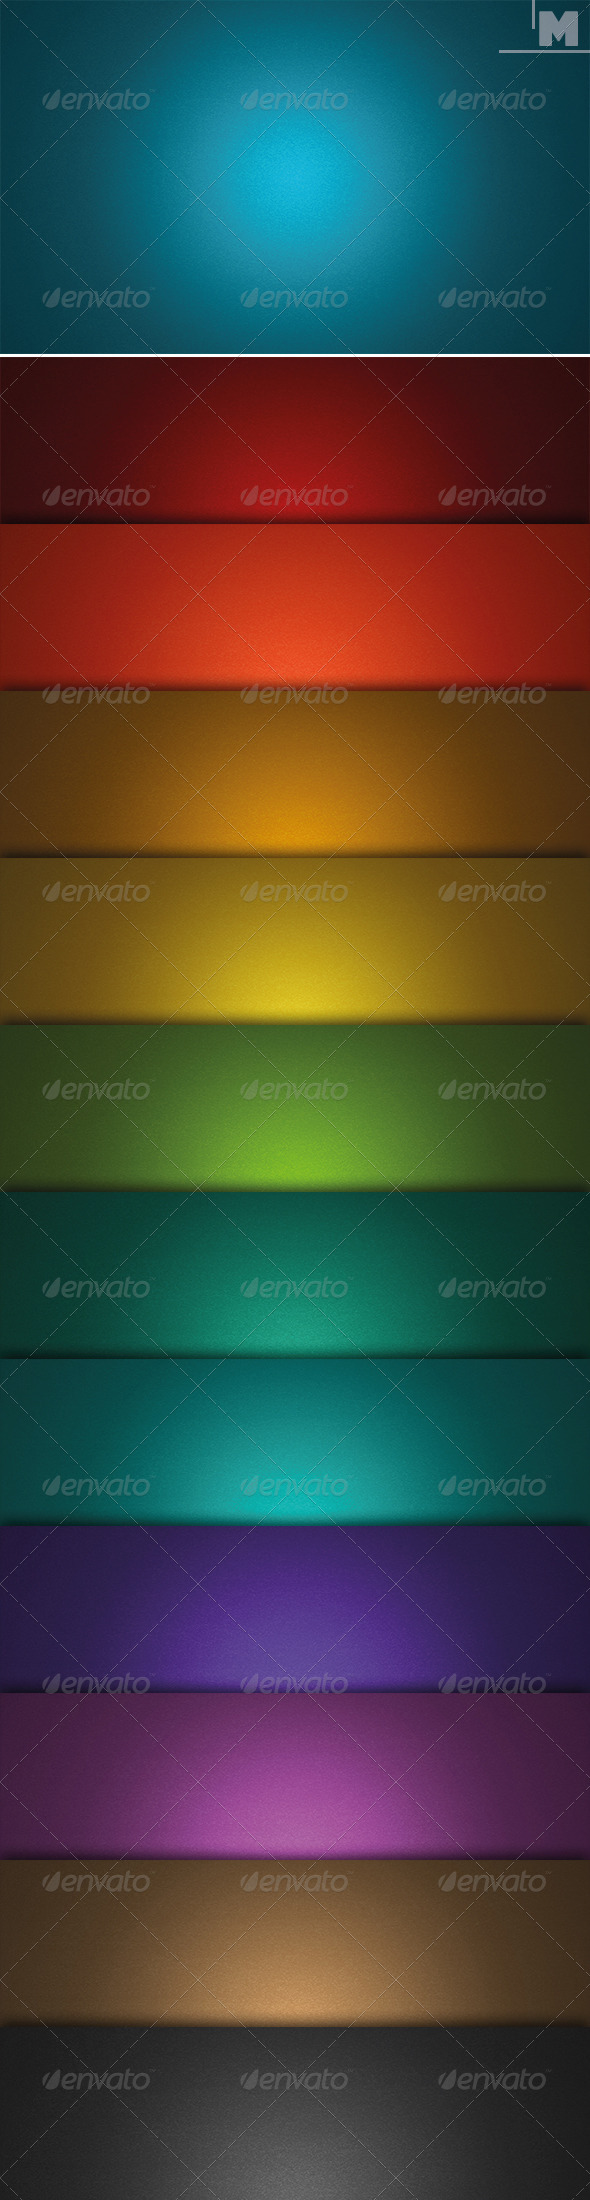 GraphicRiver Grunge Colored Backgrounds 7814156